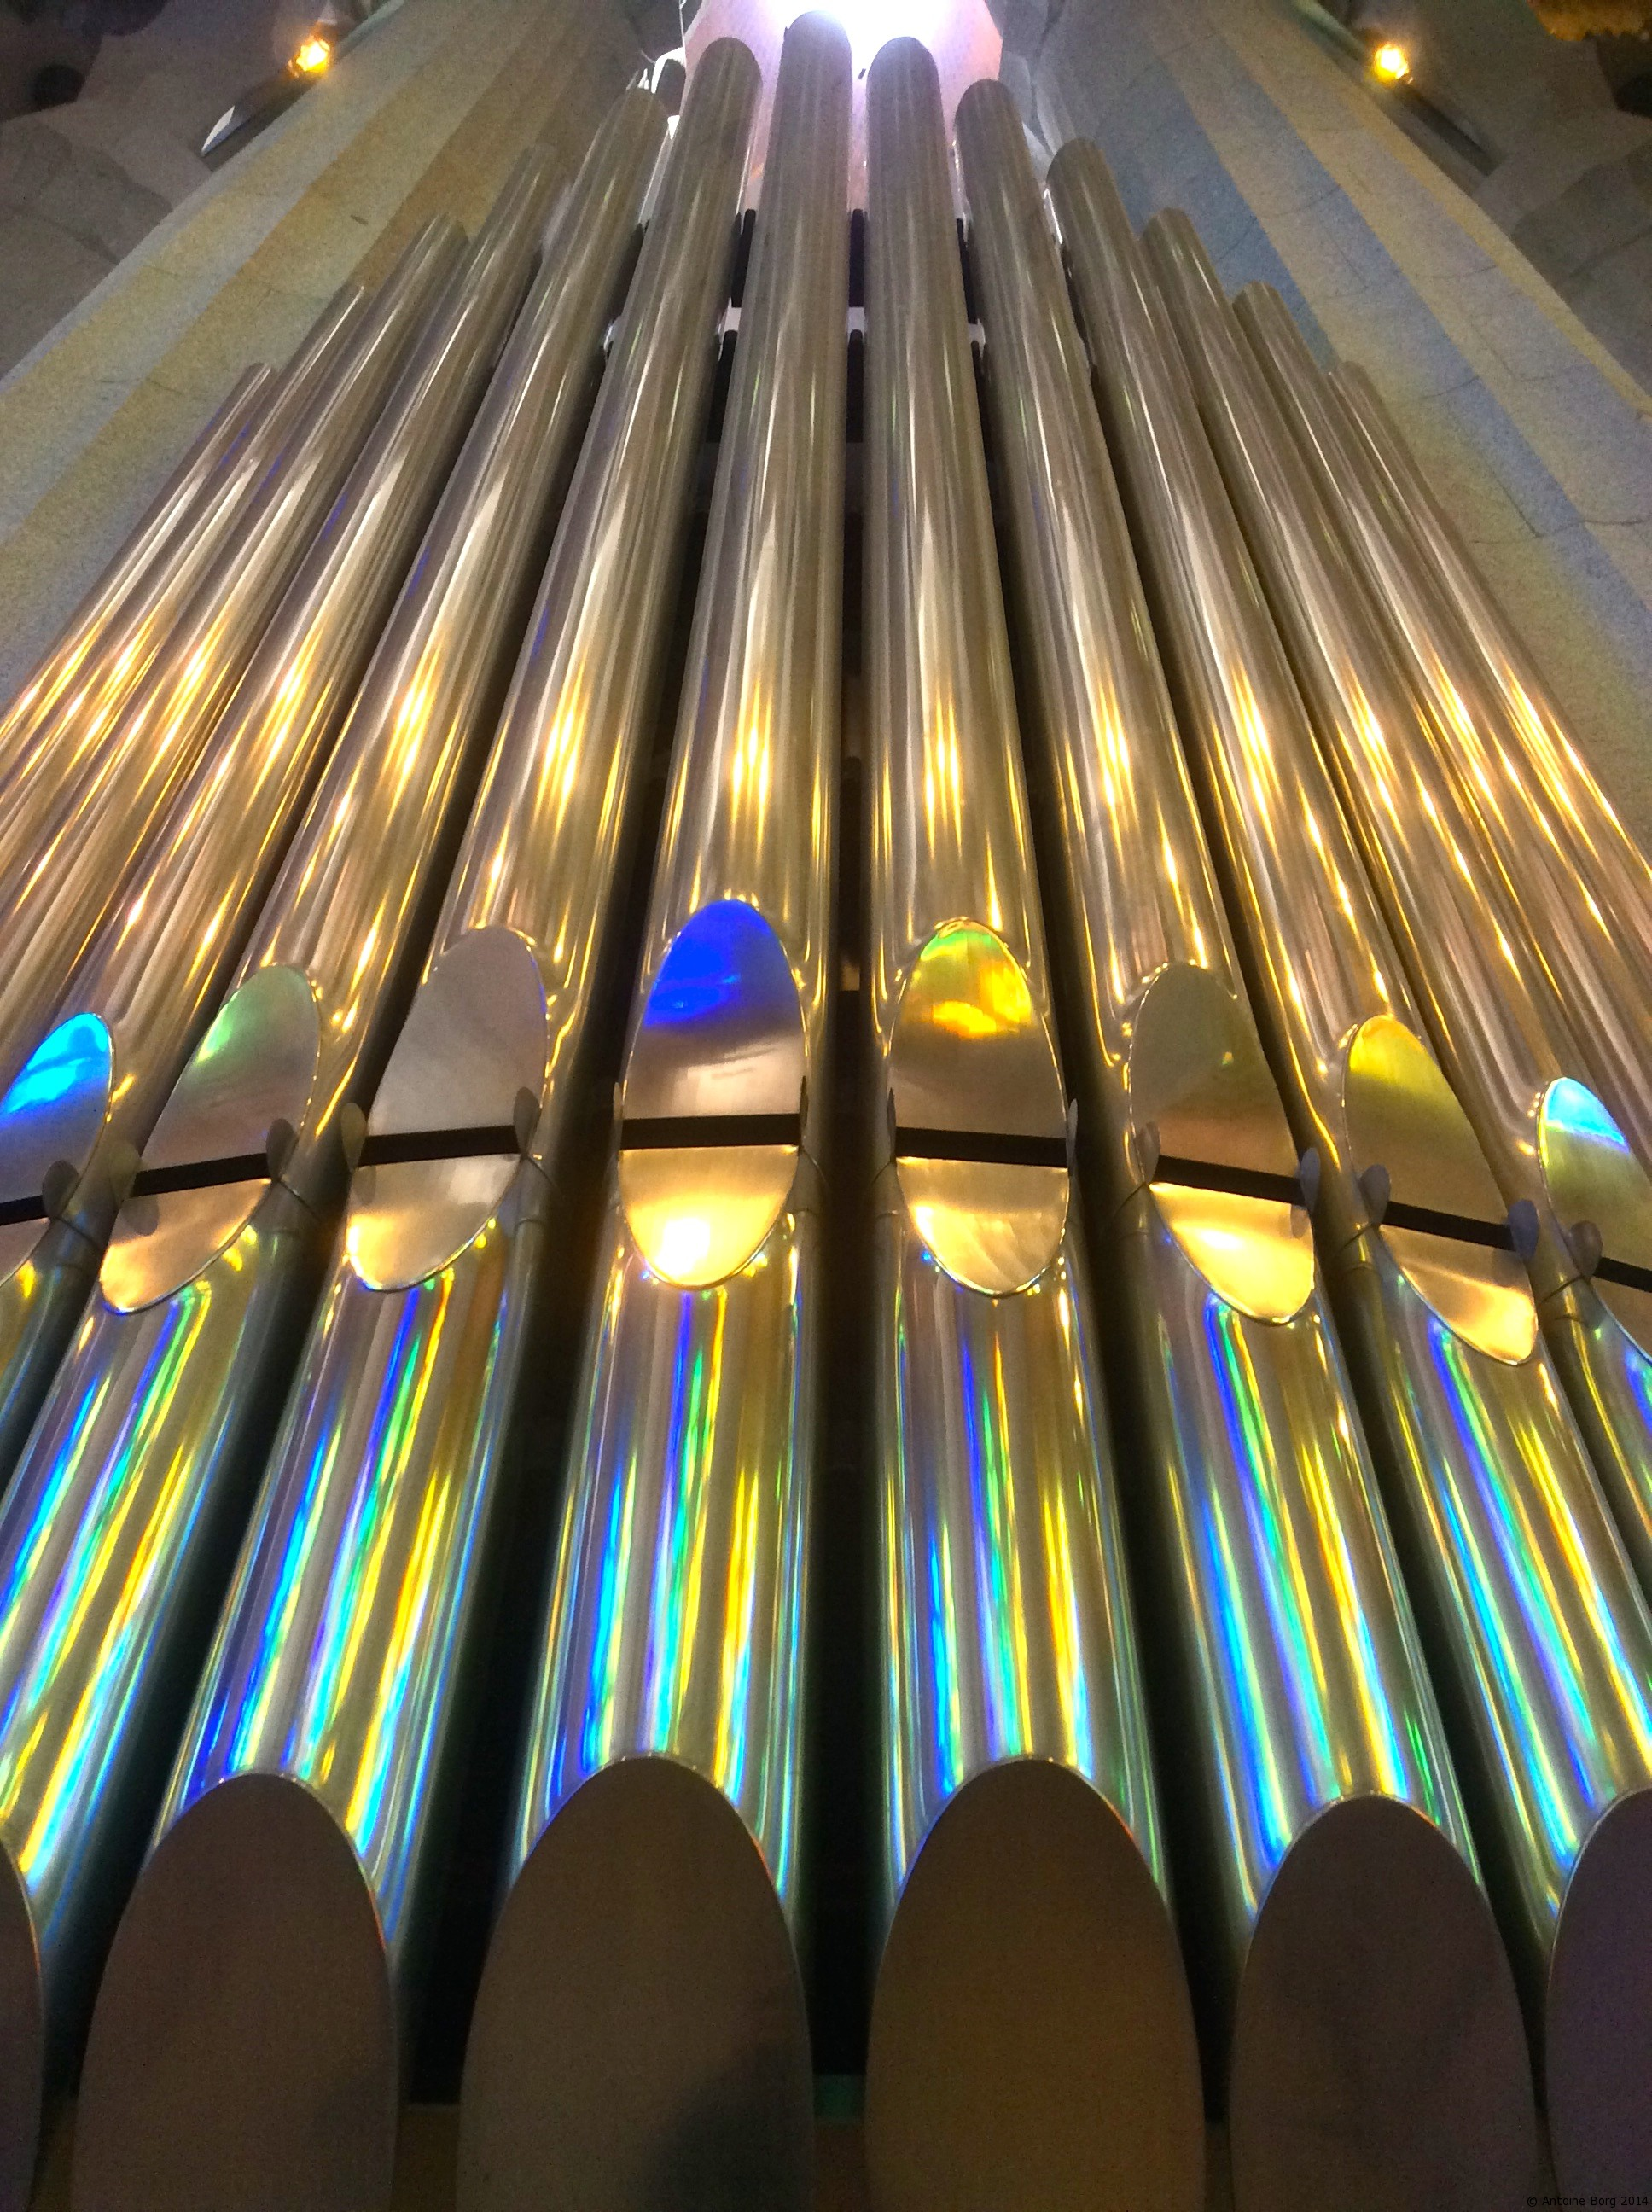 A photo of the organ in the Sagrada Familia